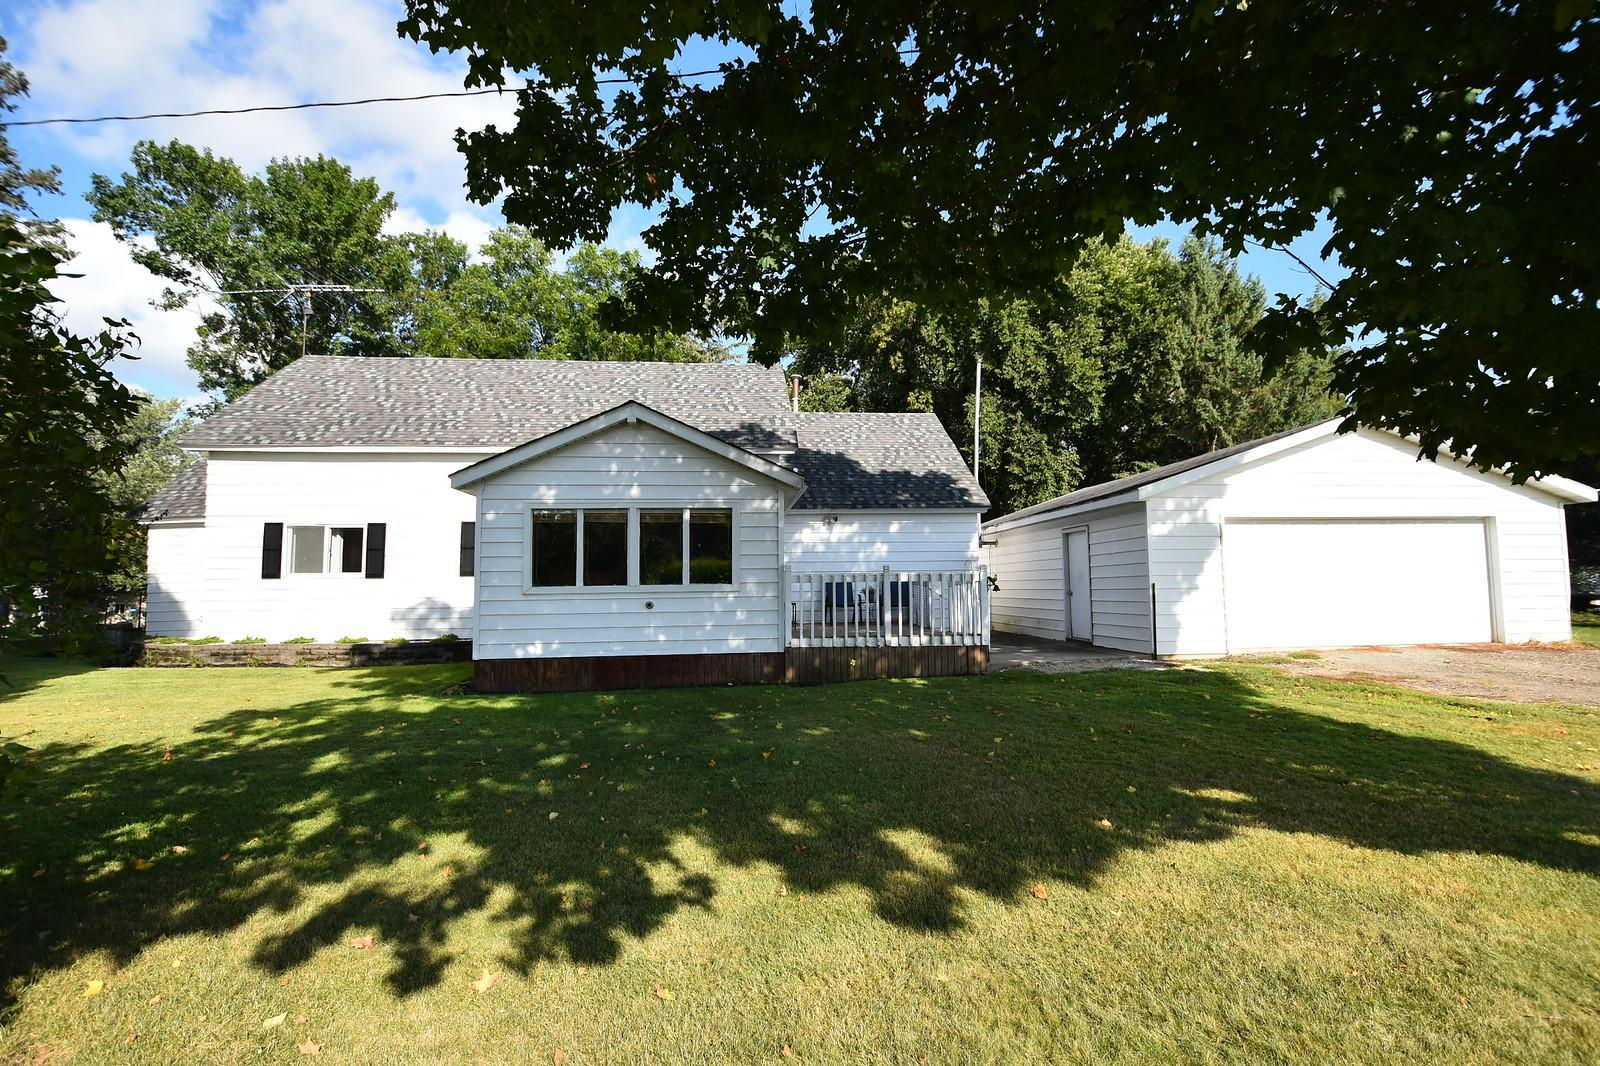 6712 75th Street NW Property Photo - Oronoco, MN real estate listing